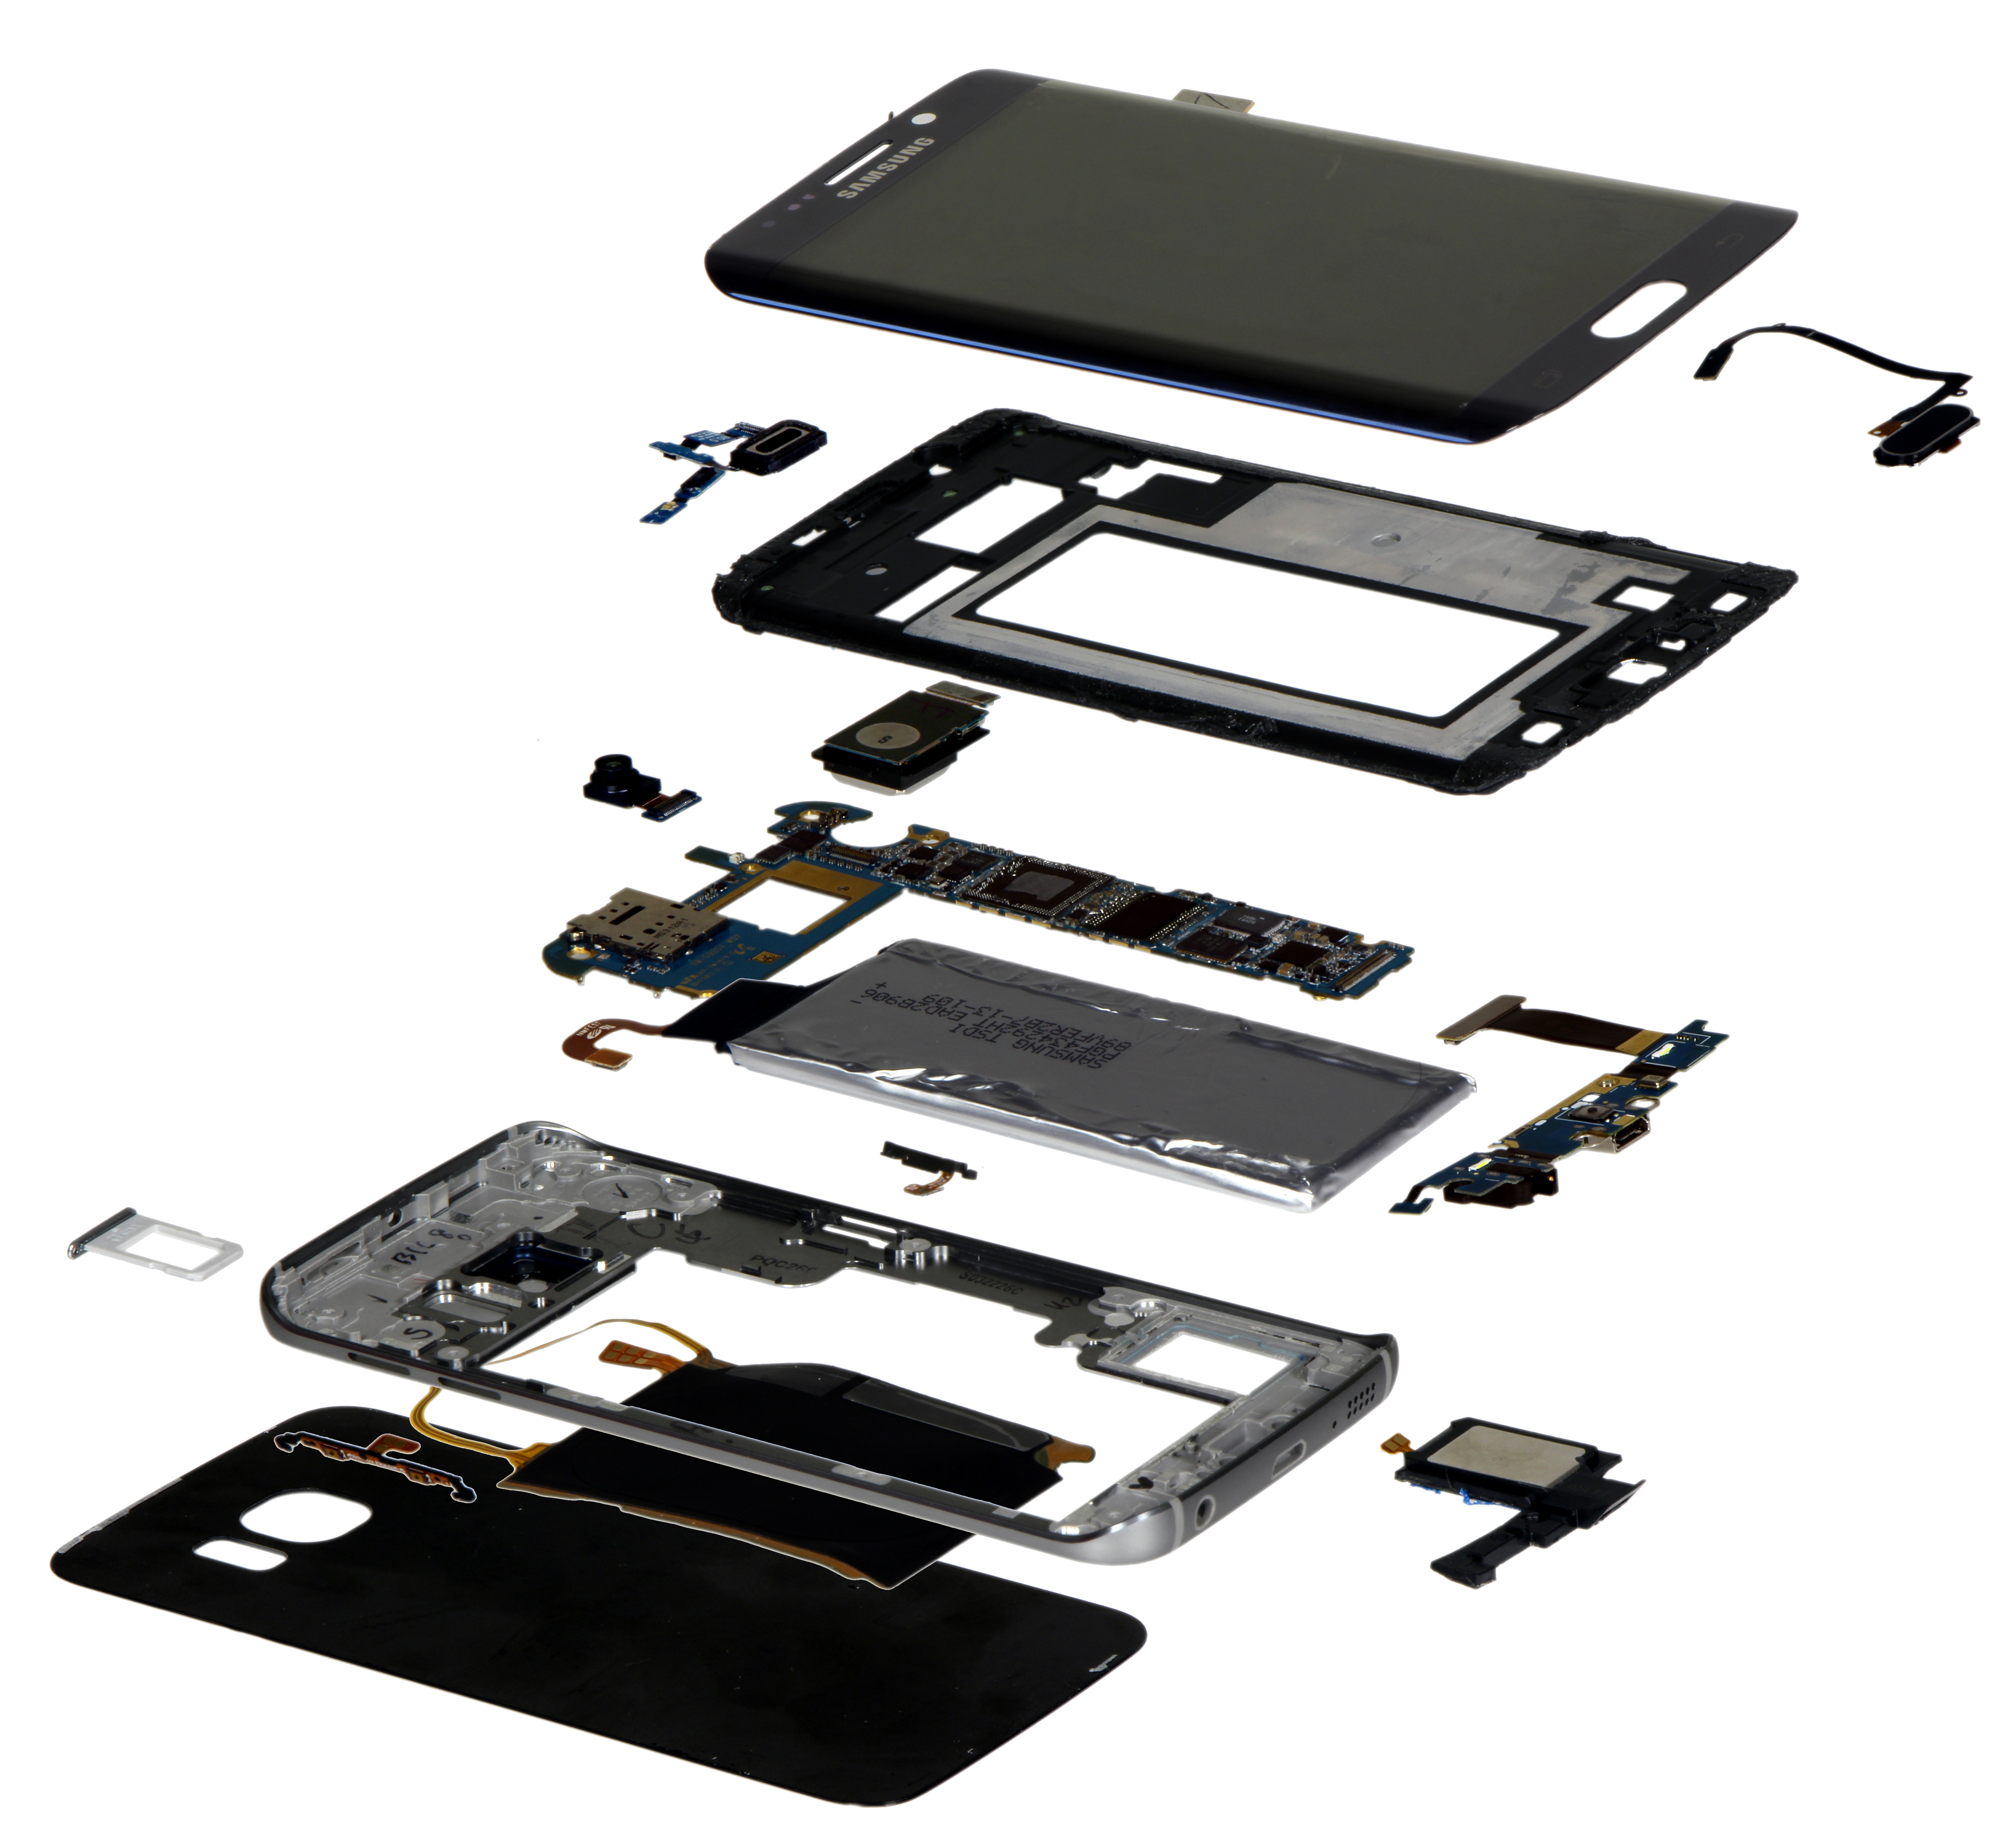 Usb Wiring Diagram Iphone Cable Pinout I0 Gif Wiring Diagram in addition Samsung Galaxy S Duos S7562l All Mic Ways Solution furthermore Samsung Galaxy Tab 2 7 0 P3100 Charging Solution Jumper Problem Ways Charging Not Supported as well 10 Pcs Lot New Charging Usb Ic 1610a2 U2 Chip For Iphone 6 6 Plus 36 Pins further Xbox 360 Power Wiring Diagram. on phone motherboard diagram